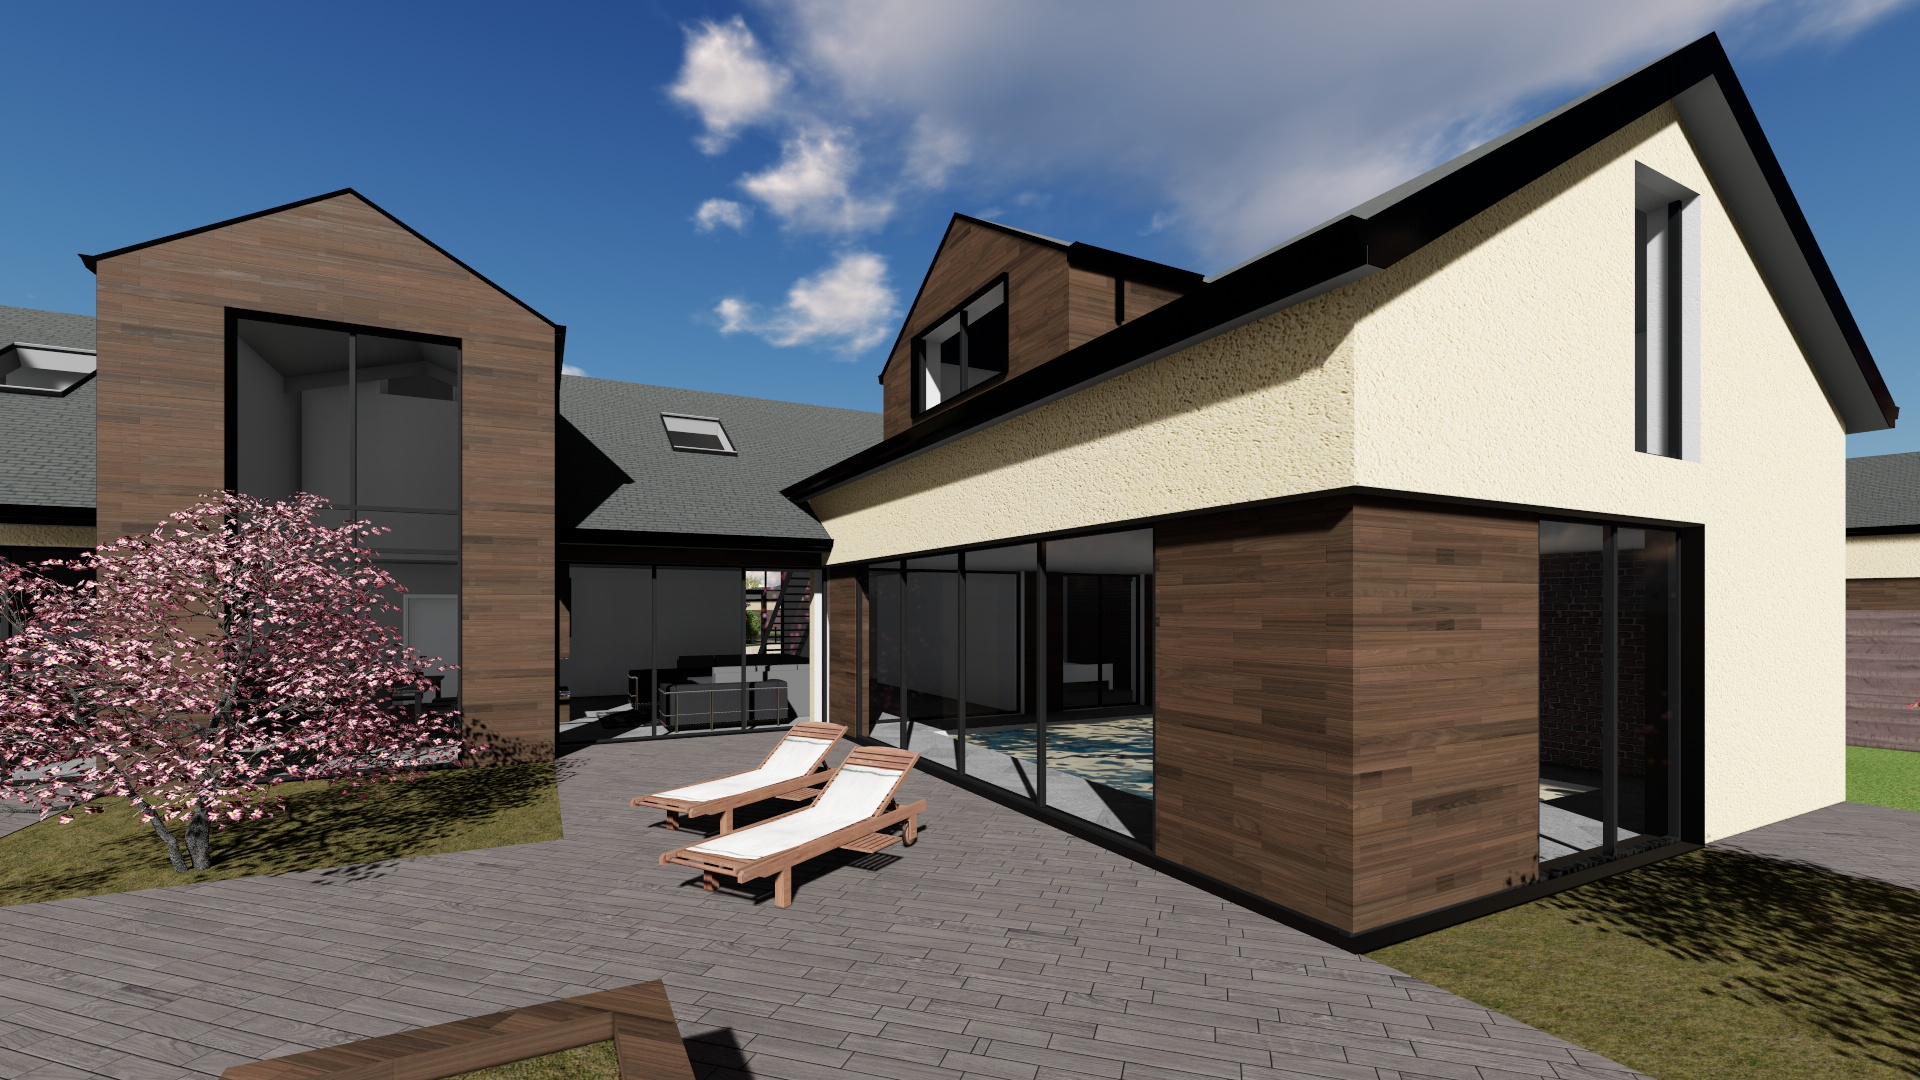 Carter-Zub new build development